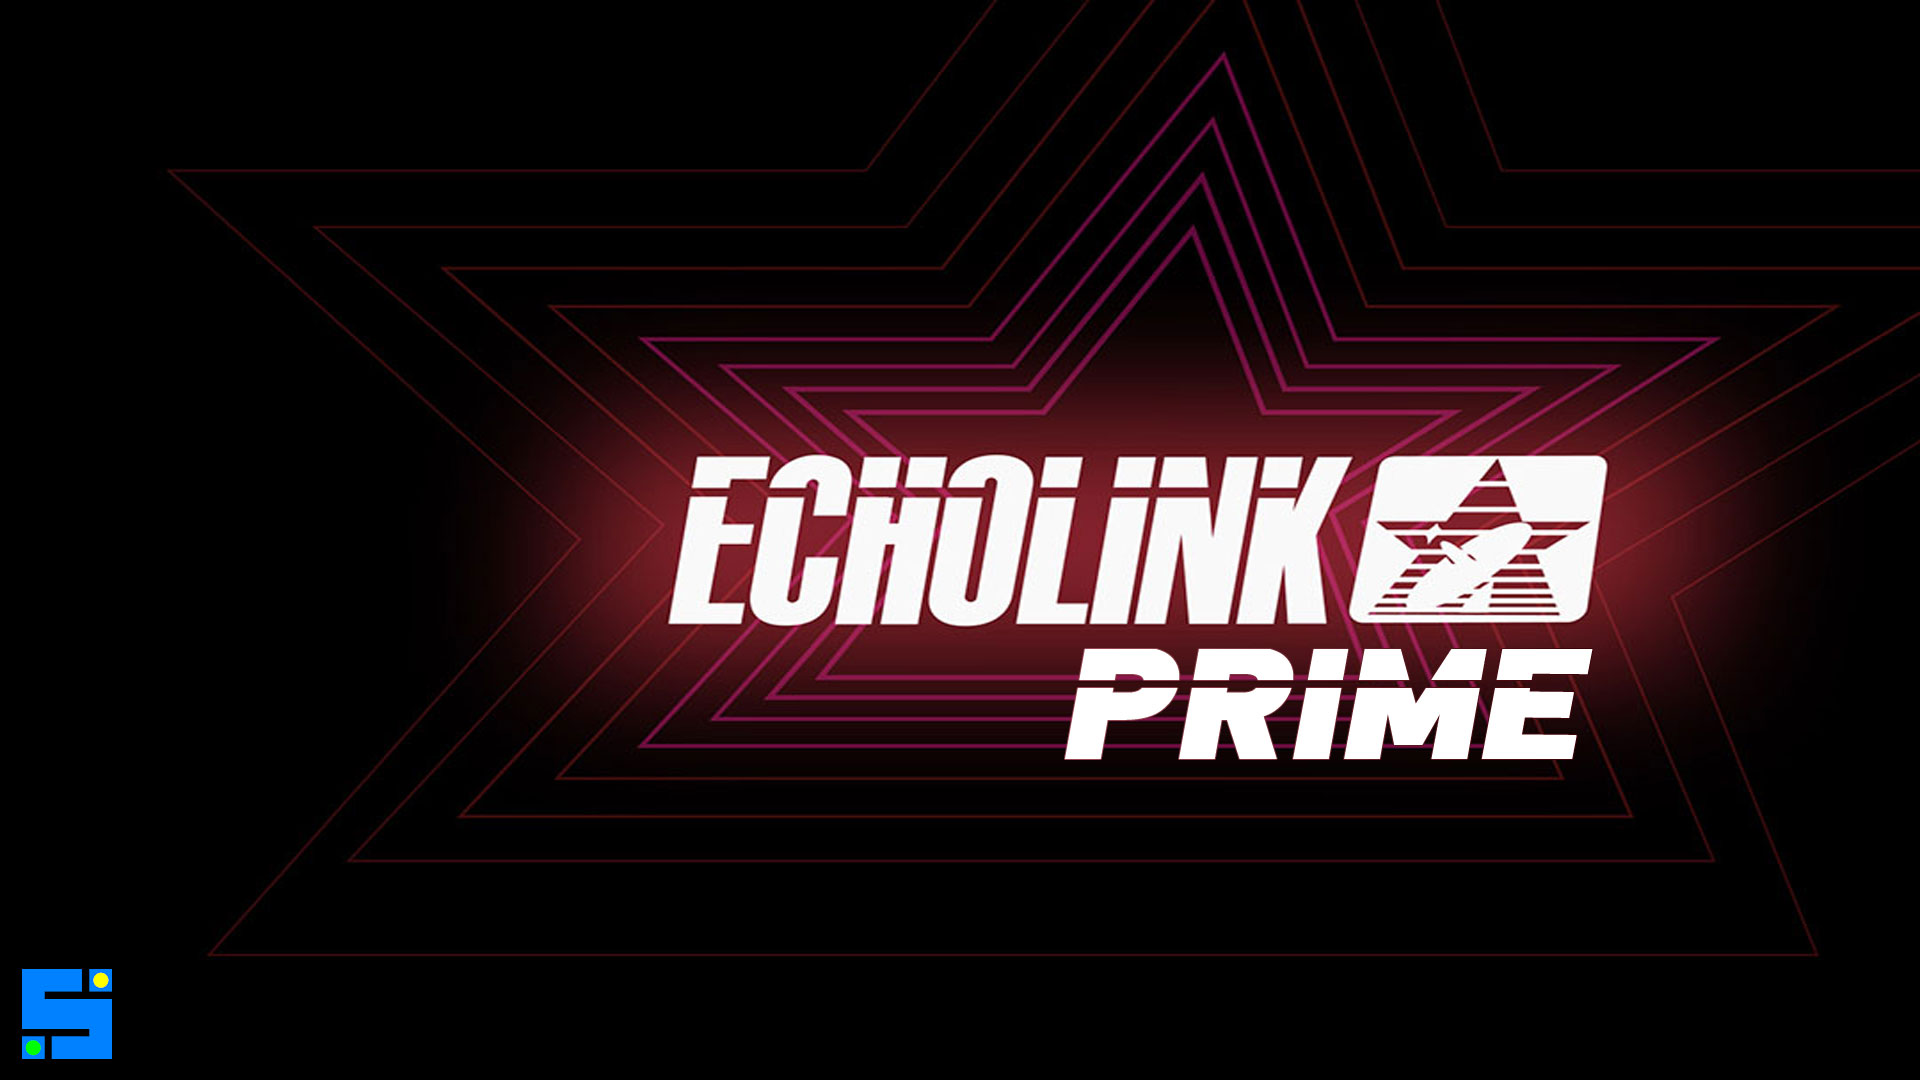 Download Software Echolink Prime New Update Firmware Receiver